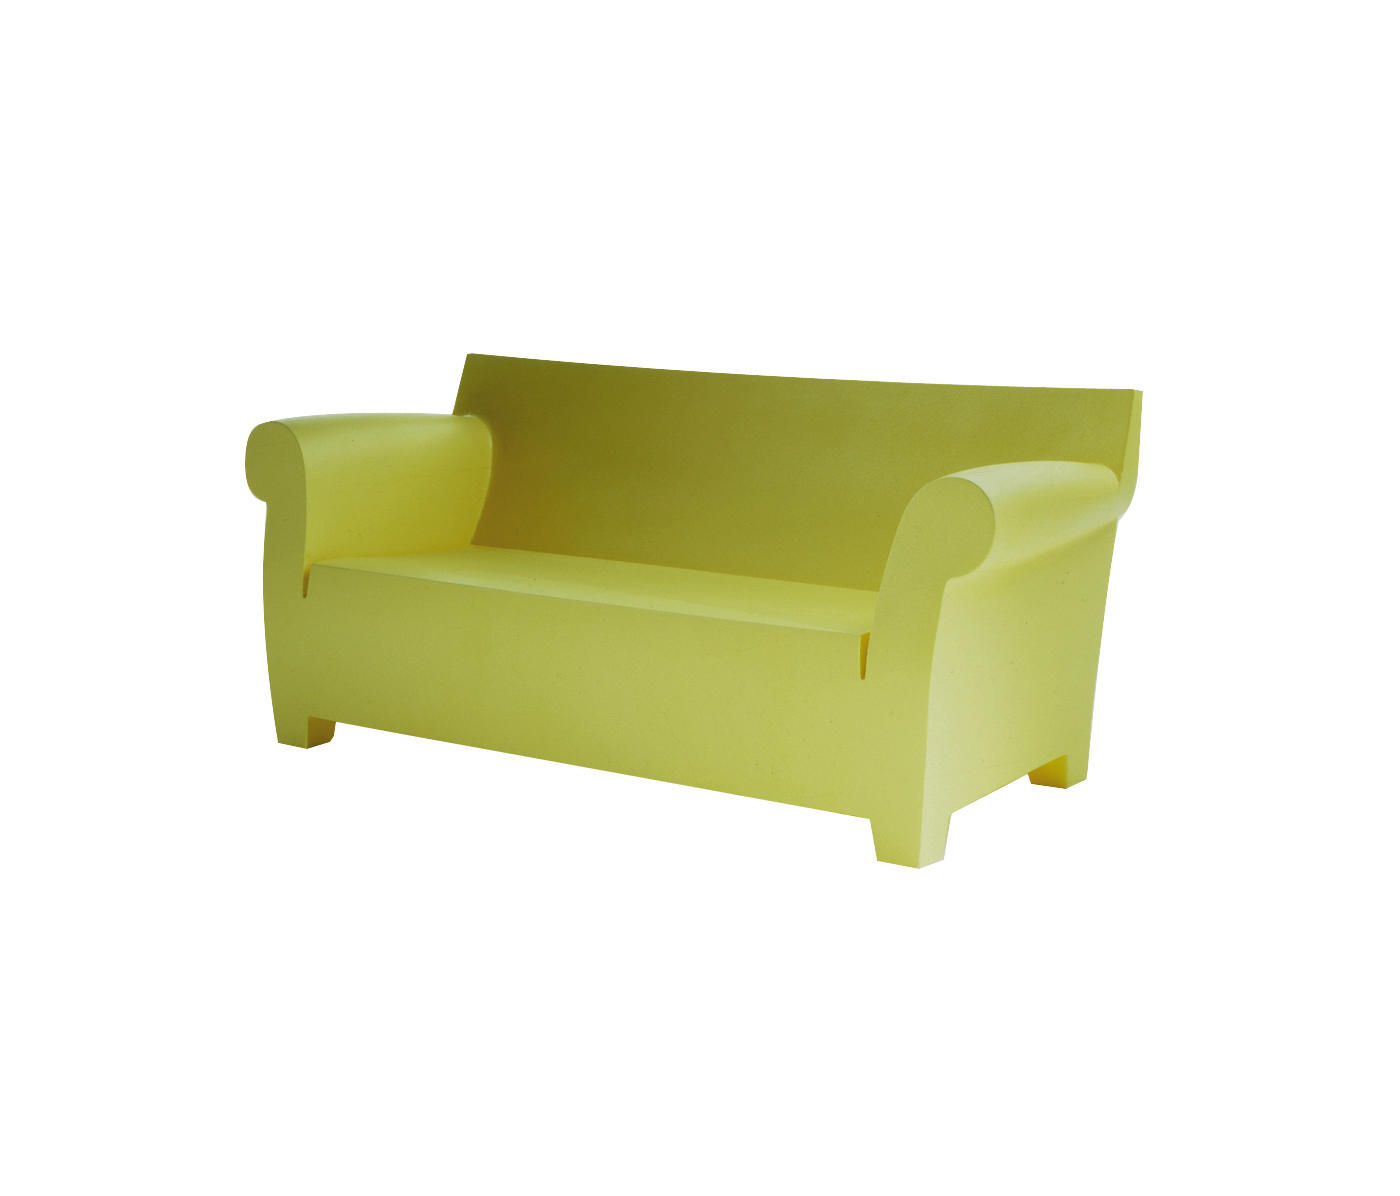 Architonic Regarding Well Known Bubble Club Sofas (Gallery 5 of 20)